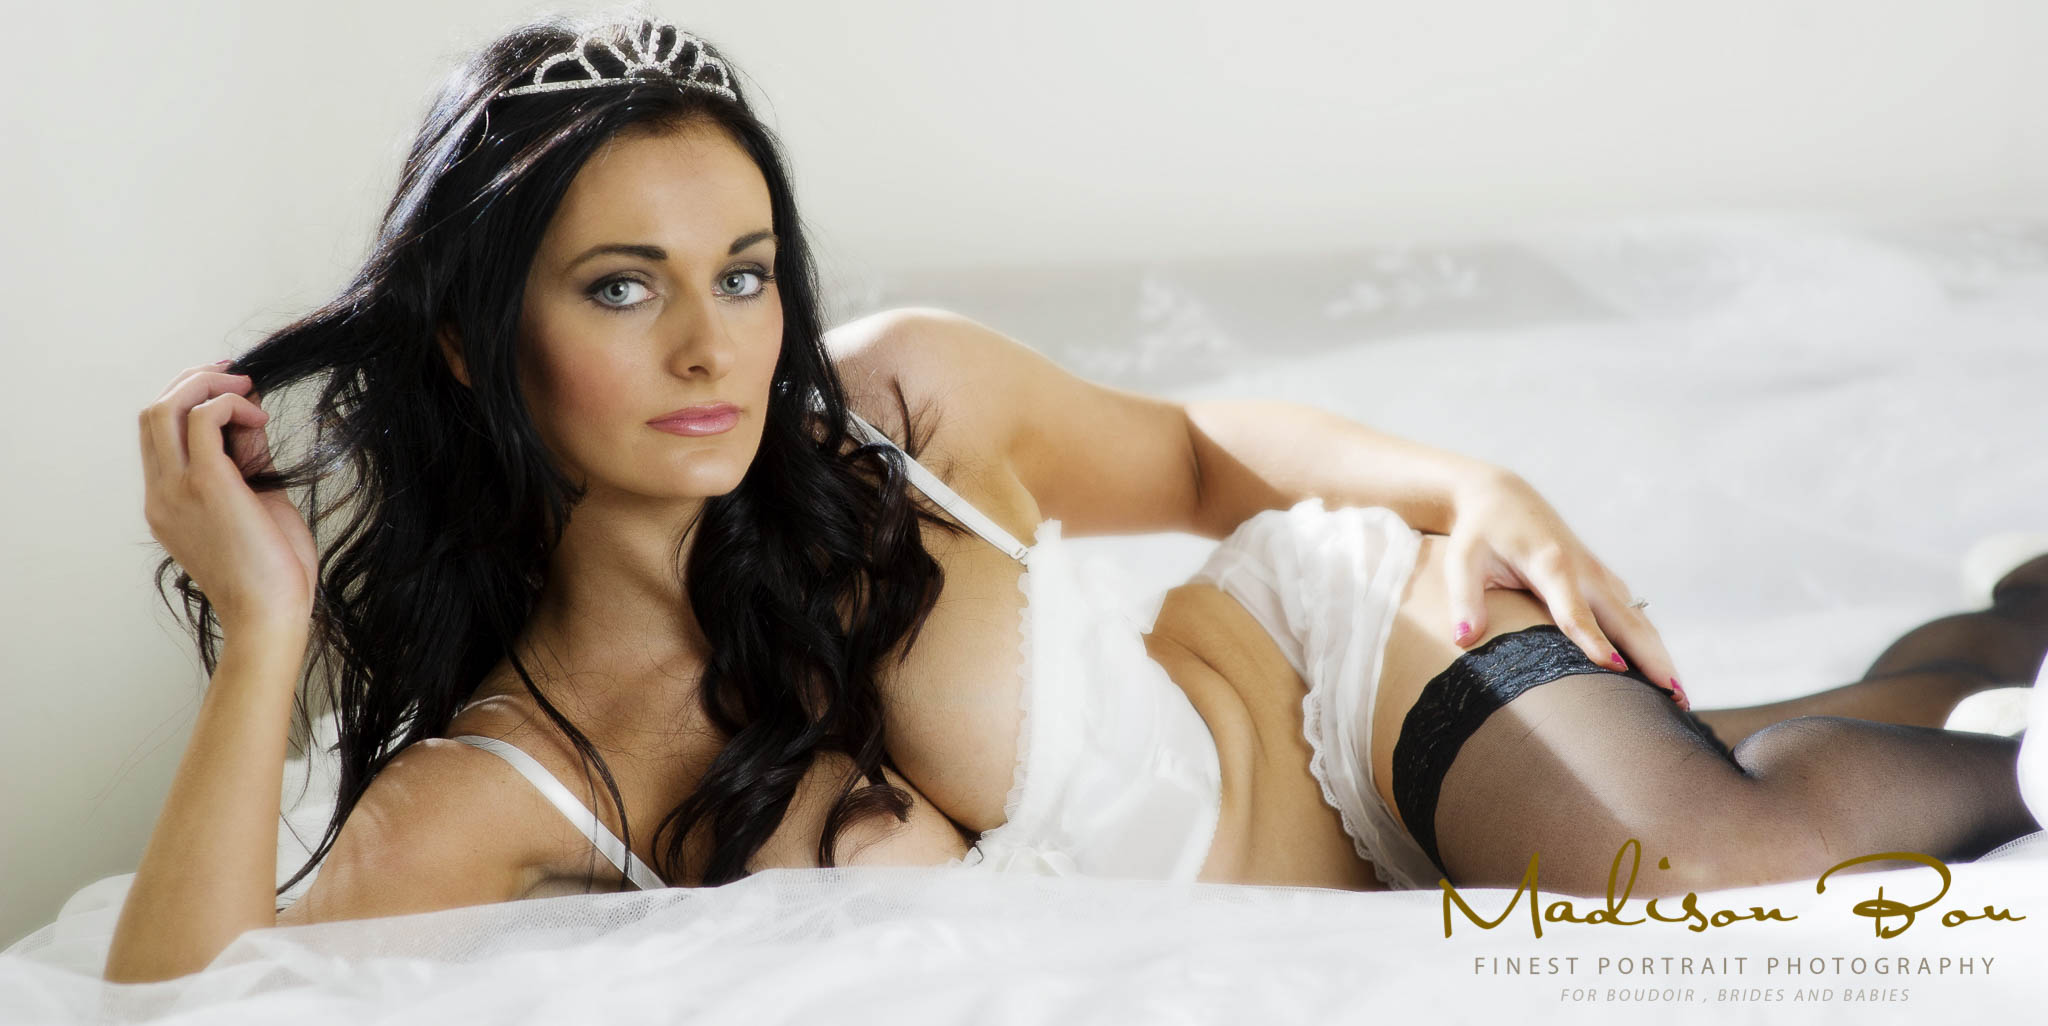 BRIDAL BOUDOIR COMPETITION – WIN THE PERFECT GIFT FOR YOUR GROOM